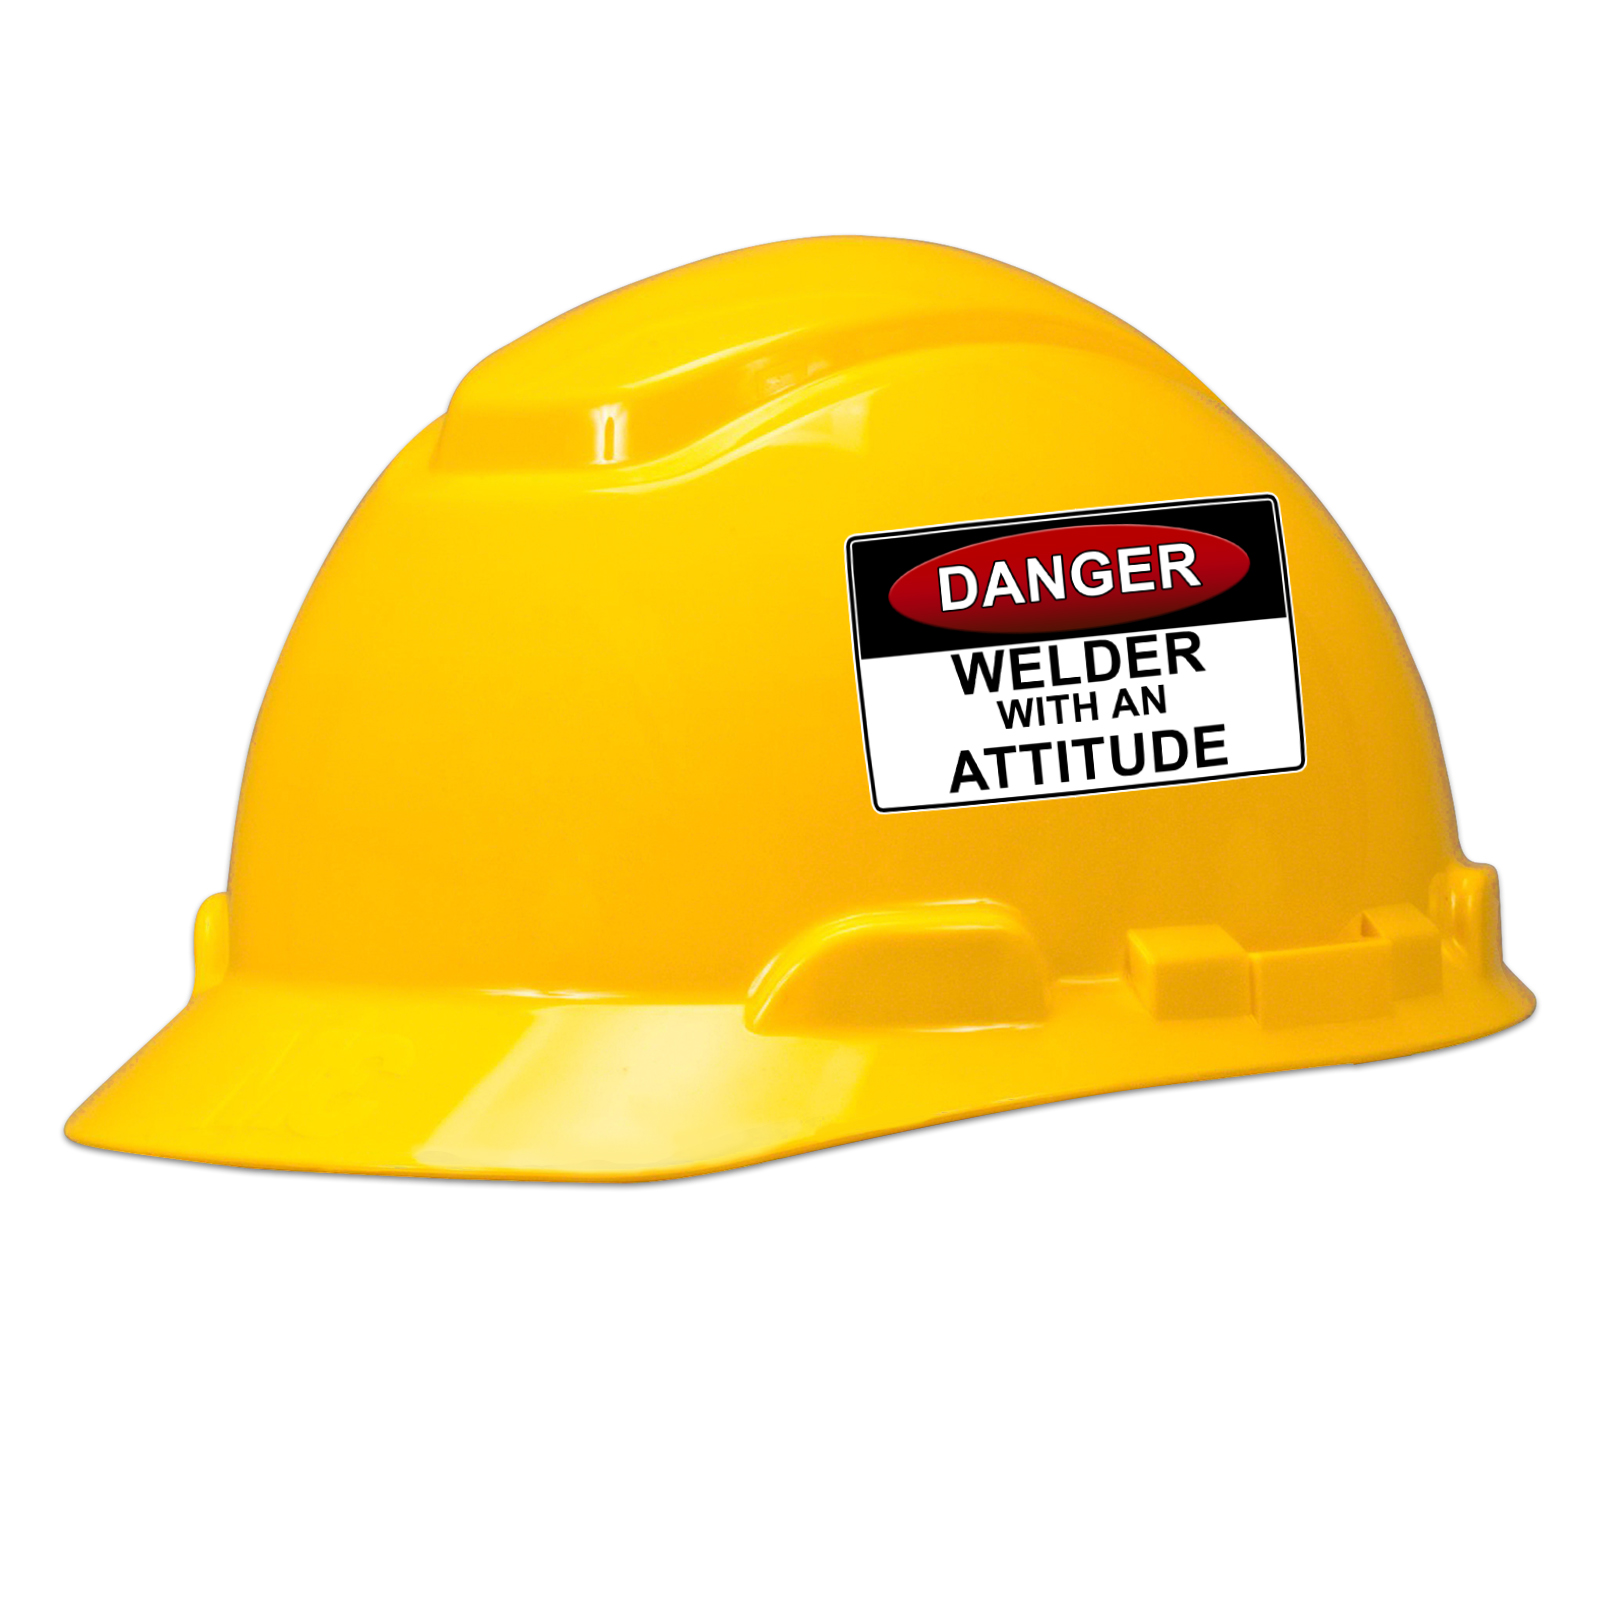 Danger Welder With An Attitude Hard Hat Helmet Sticker